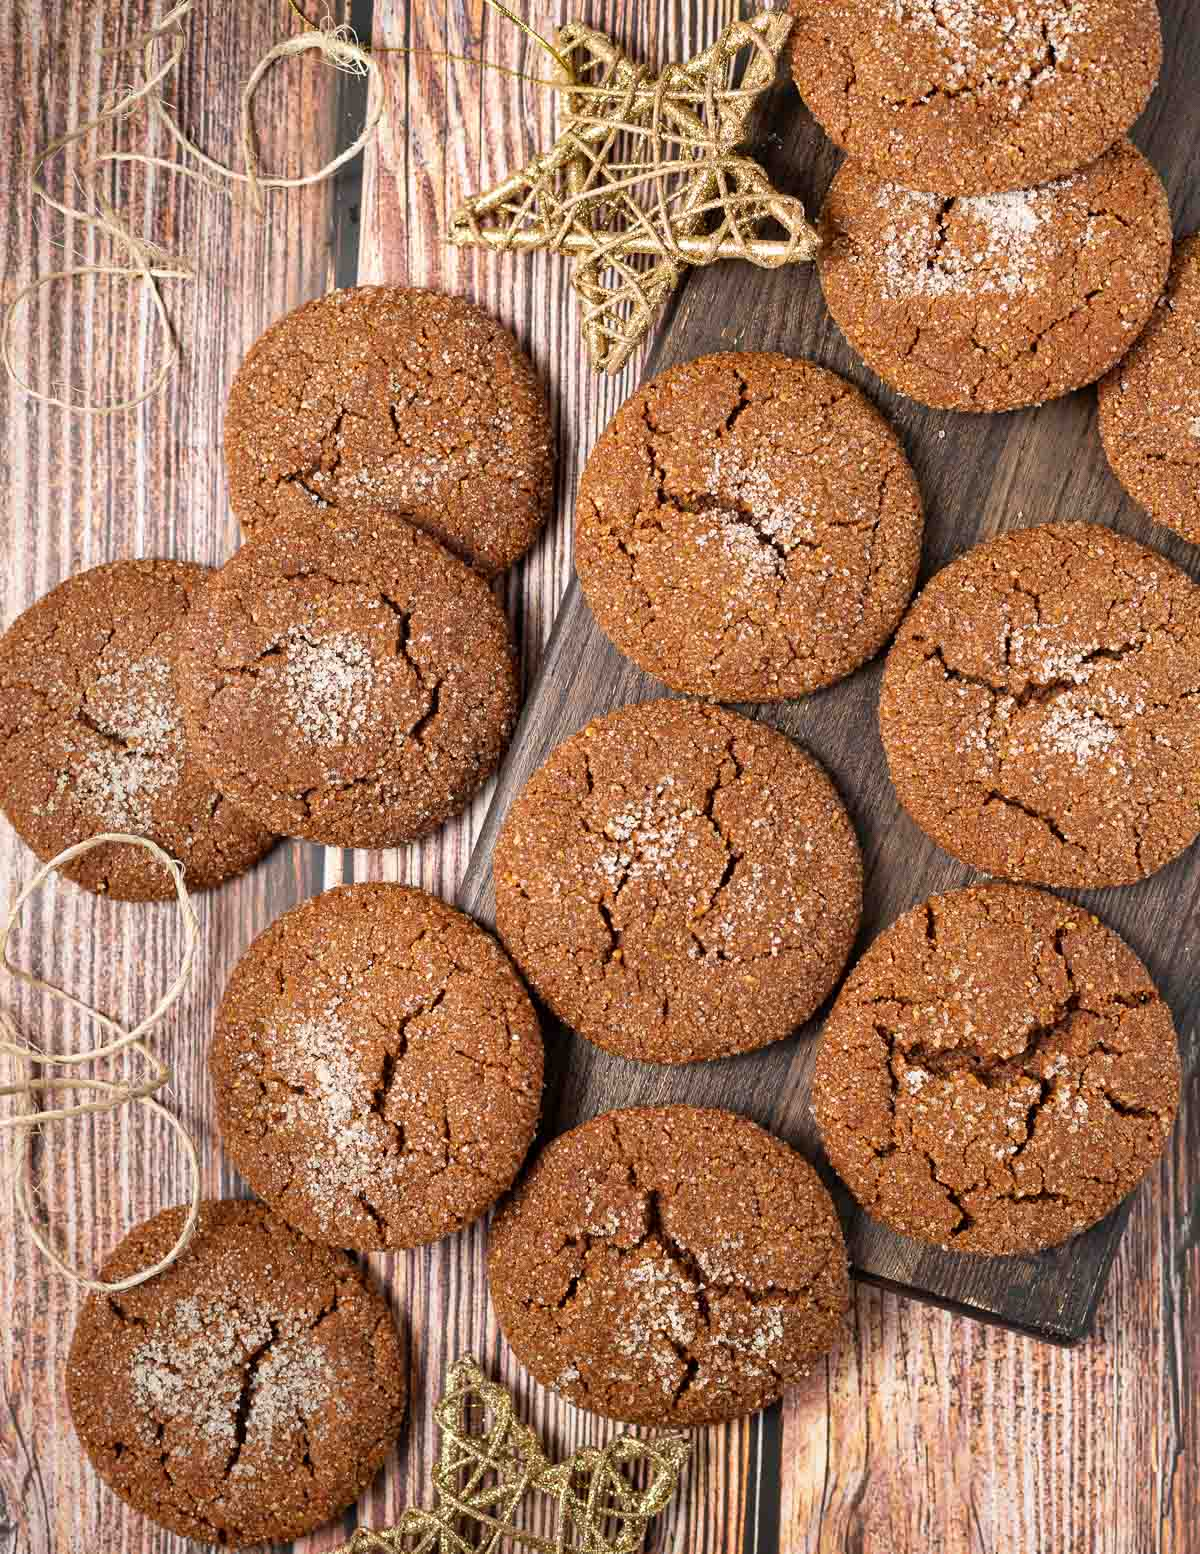 molasses cookies on a wooden board with star ornaments